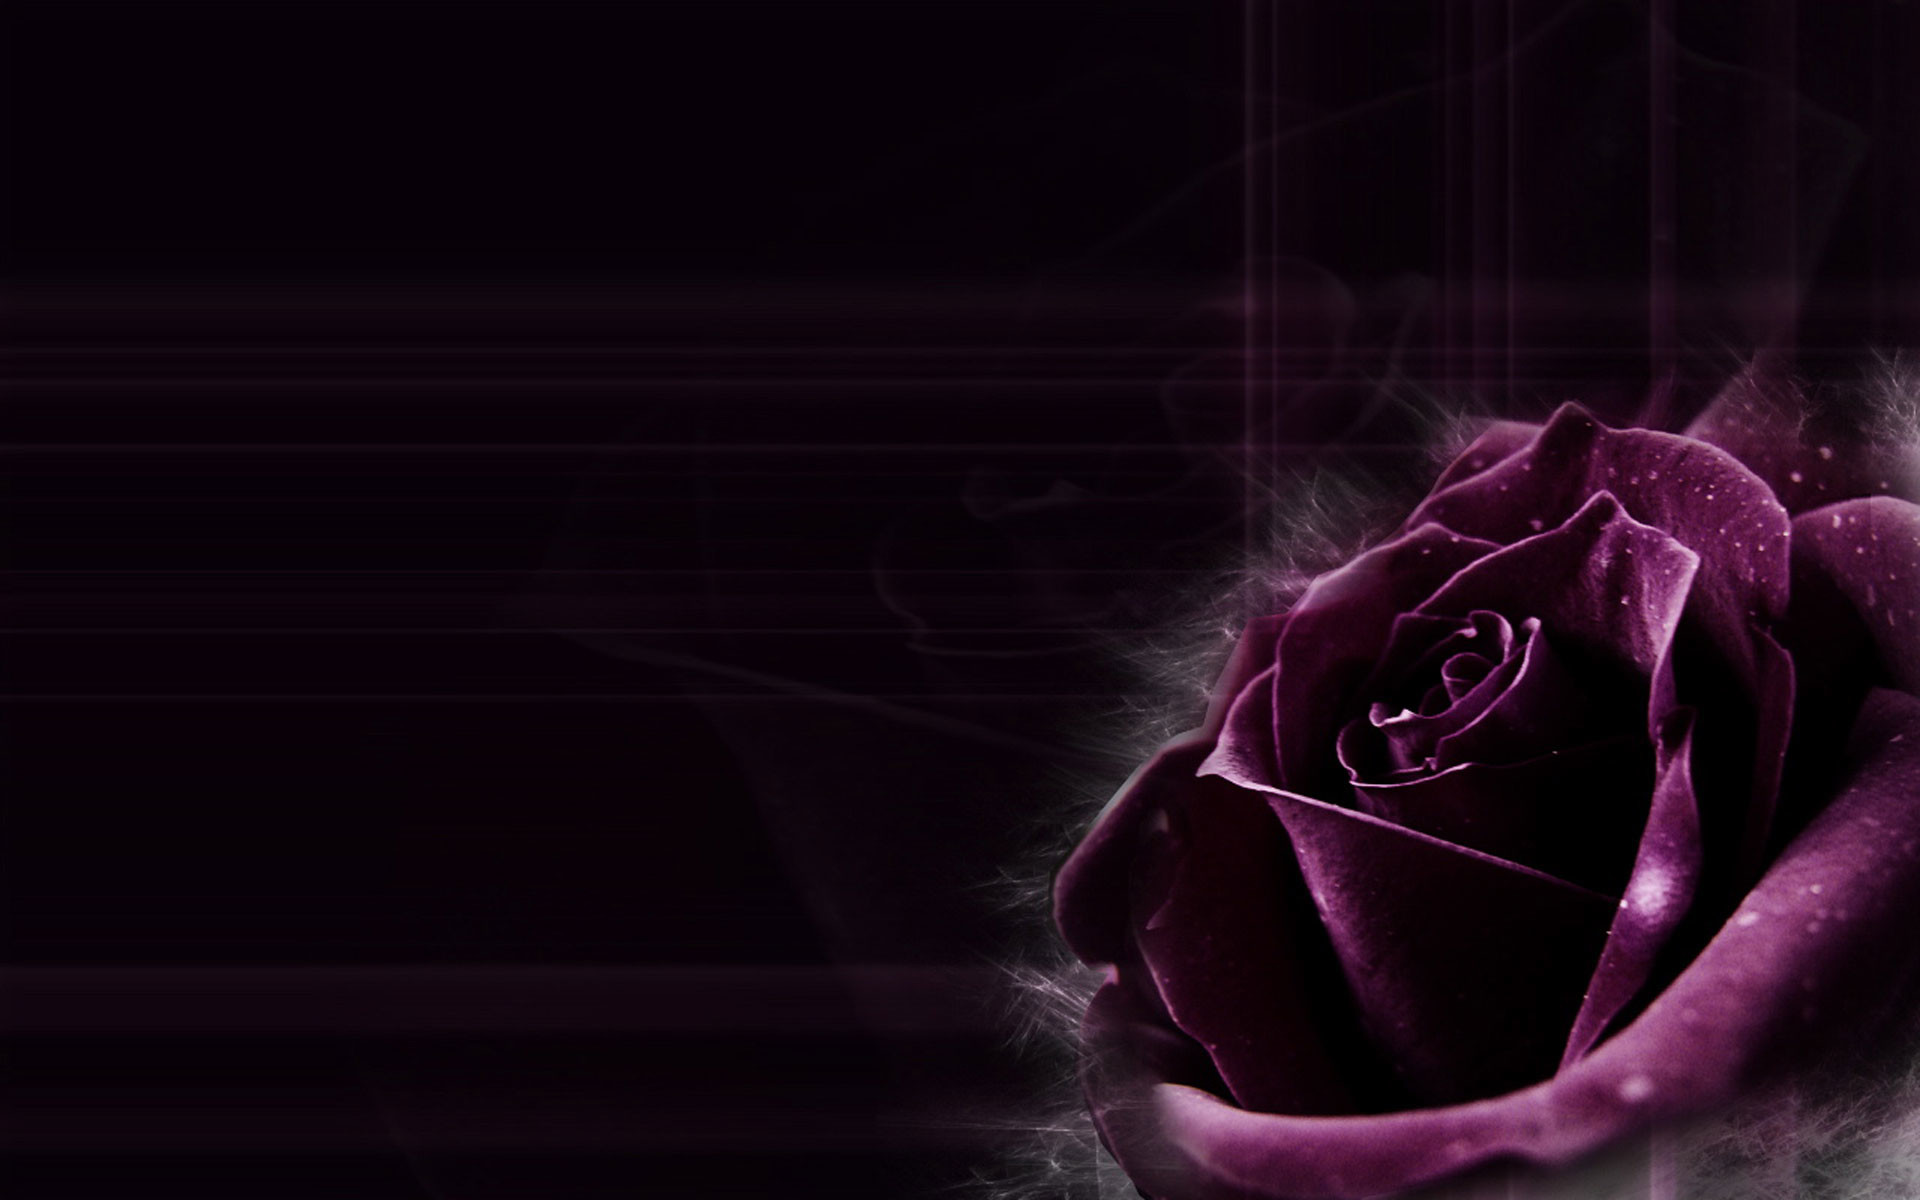 Dark Purple Rose Backgrounds Images & Pictures – Becuo